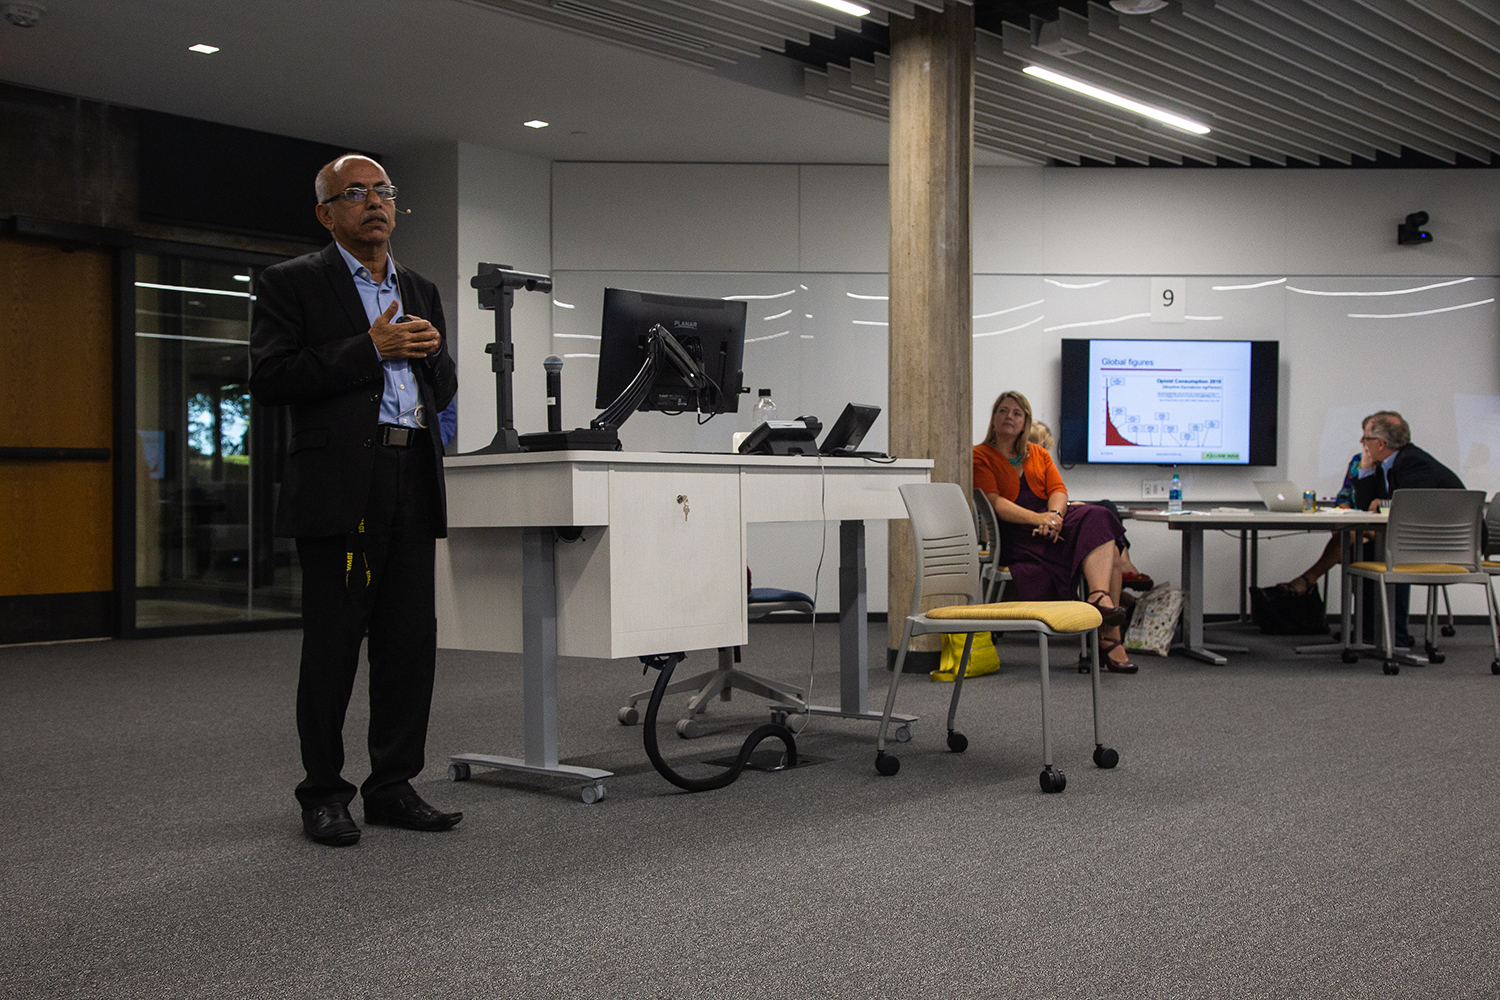 Dr. M. R. Rajagopal speaks at the College of Nursing on Monday, Sept. 17, 2018. Rajagopal was nominated for the 2018 Nobel Peace Prize for his work establishing Pallative care centers and services throughout India.